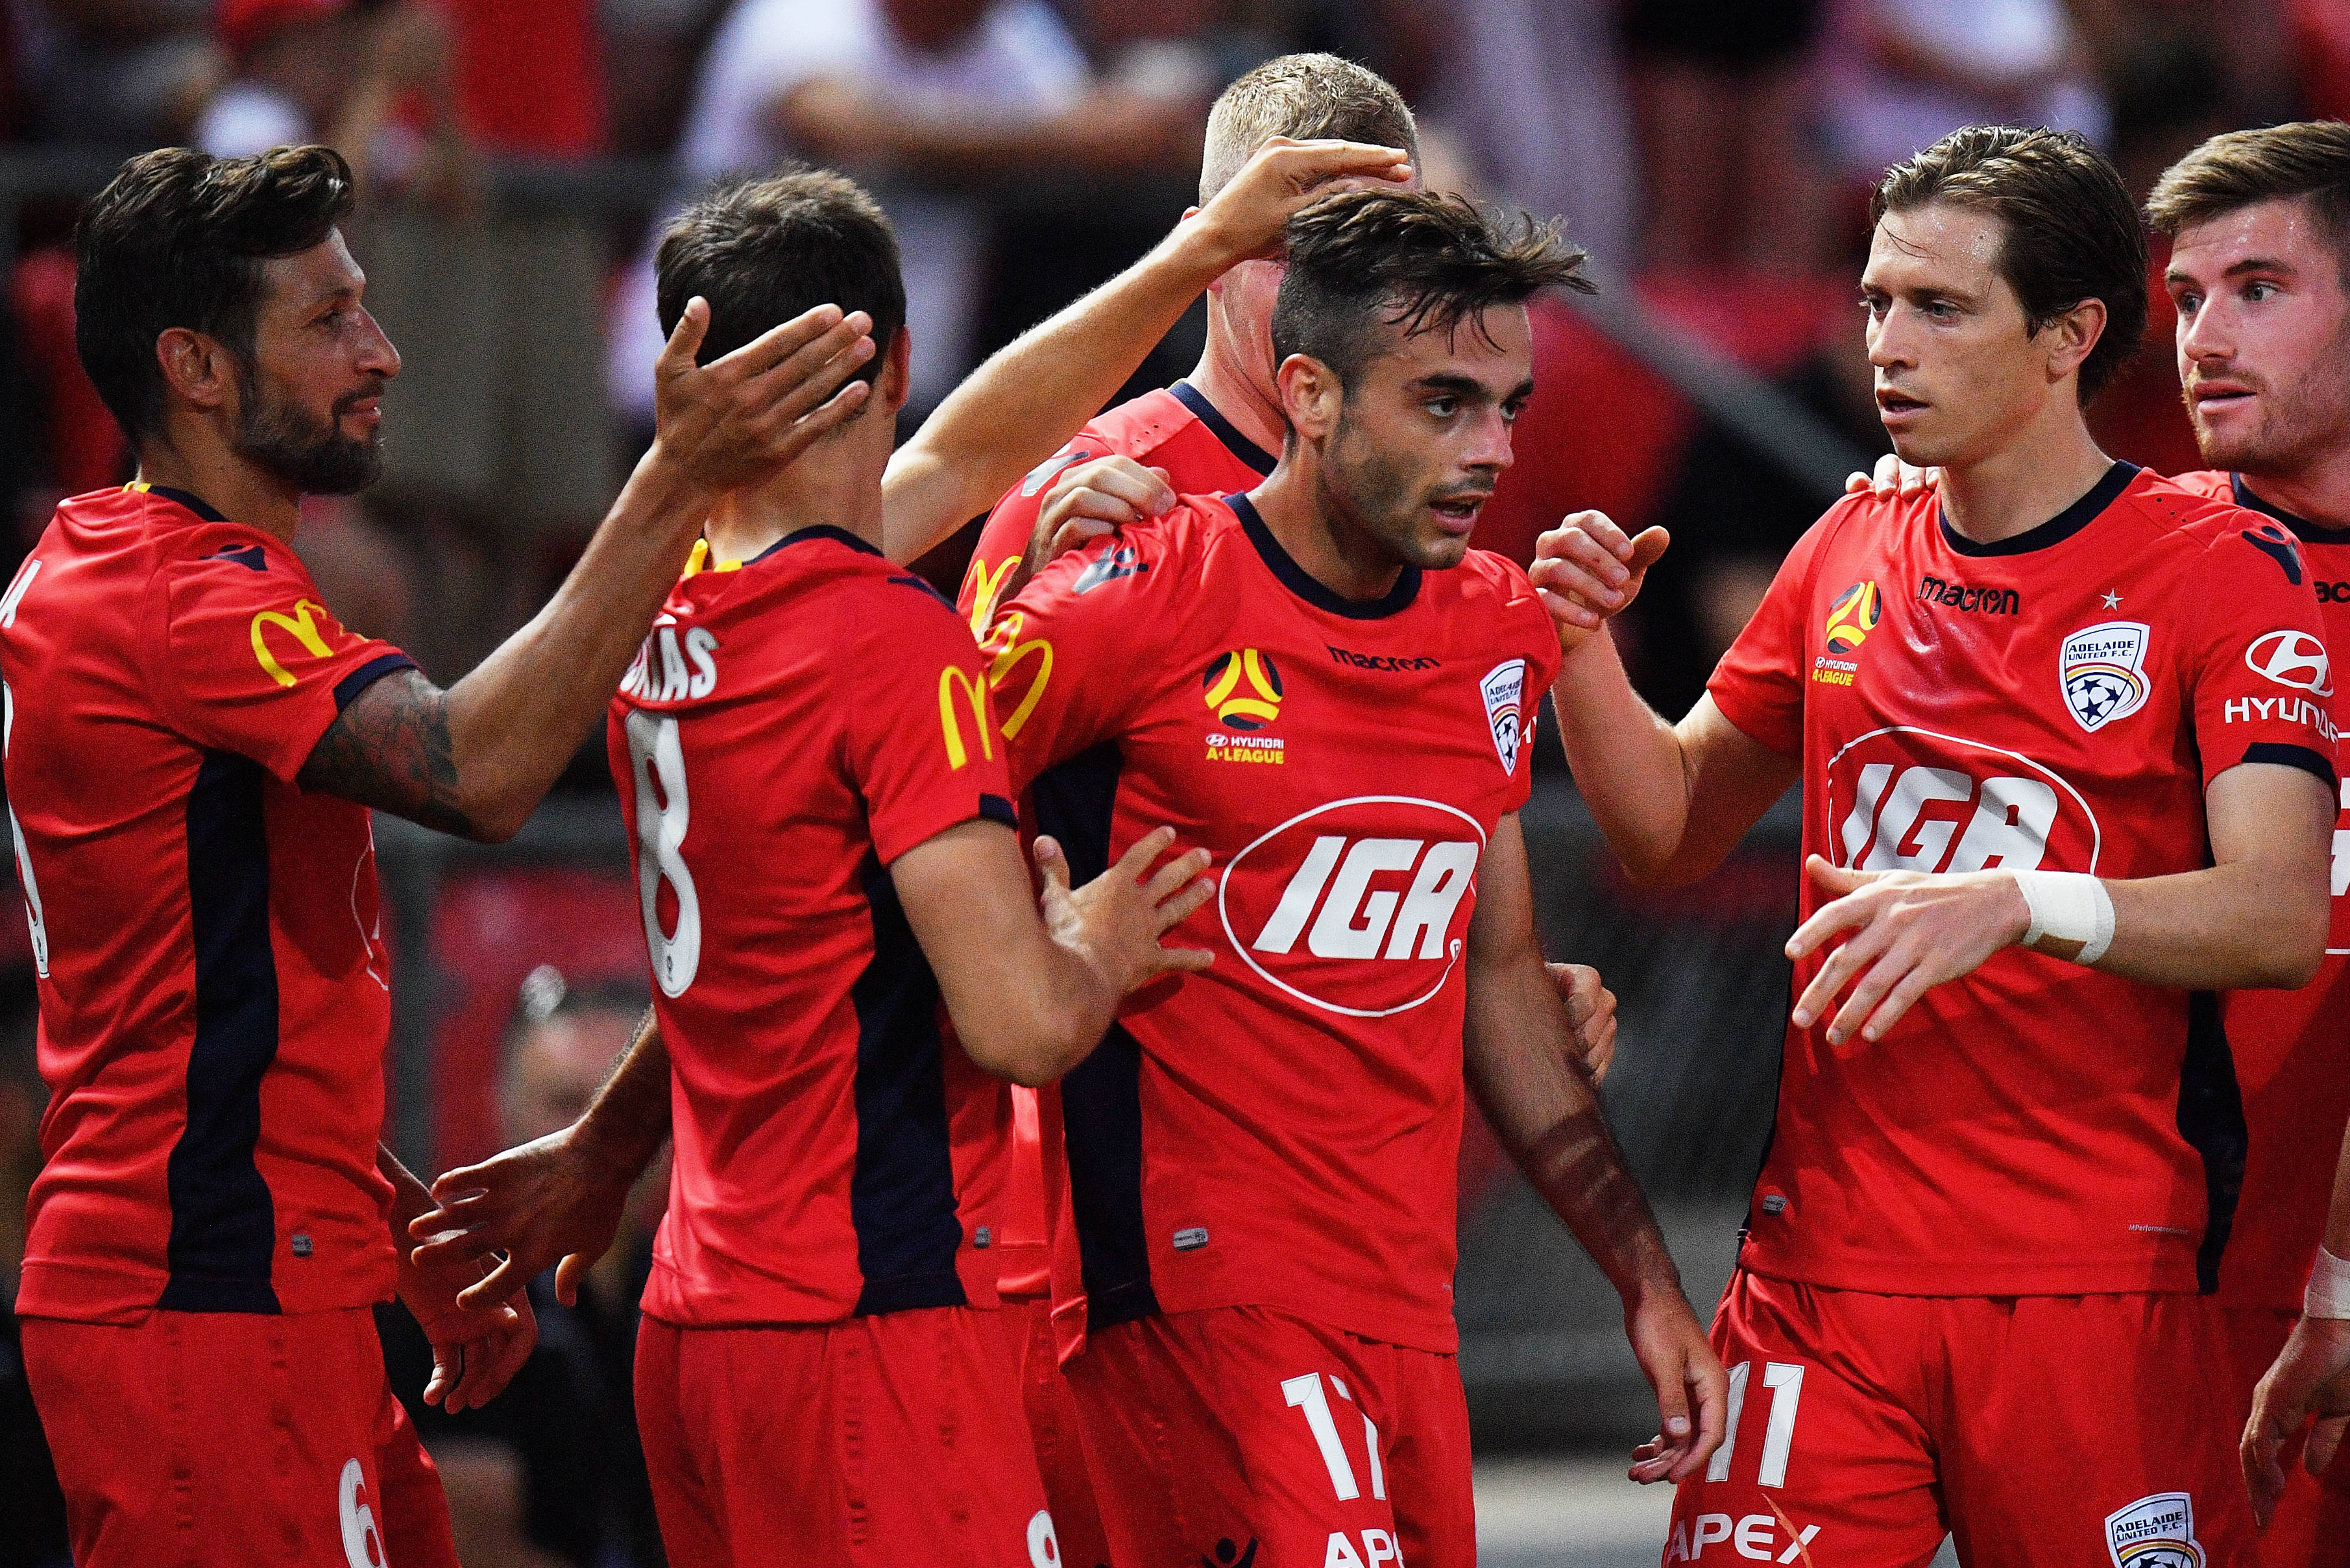 Adelaide United celebrate a goal